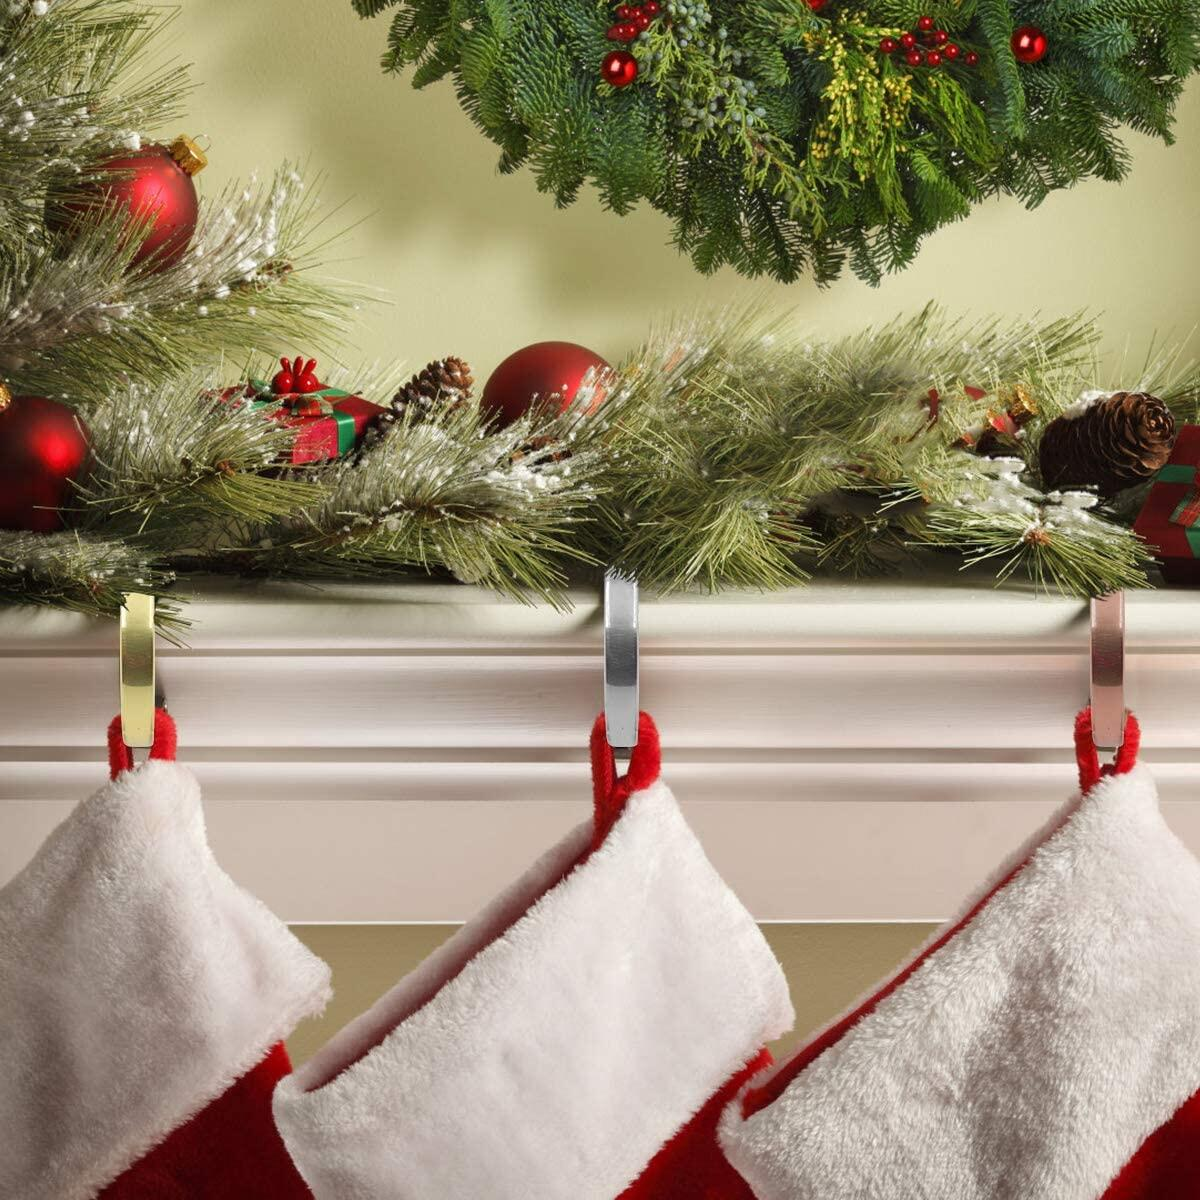 WEYON Christmas Hooks for Stockings,Stocking Holders,Home Kitchen Hanging Hooks,Multiple Uses,4Pcs ,Sold by CHUDAO